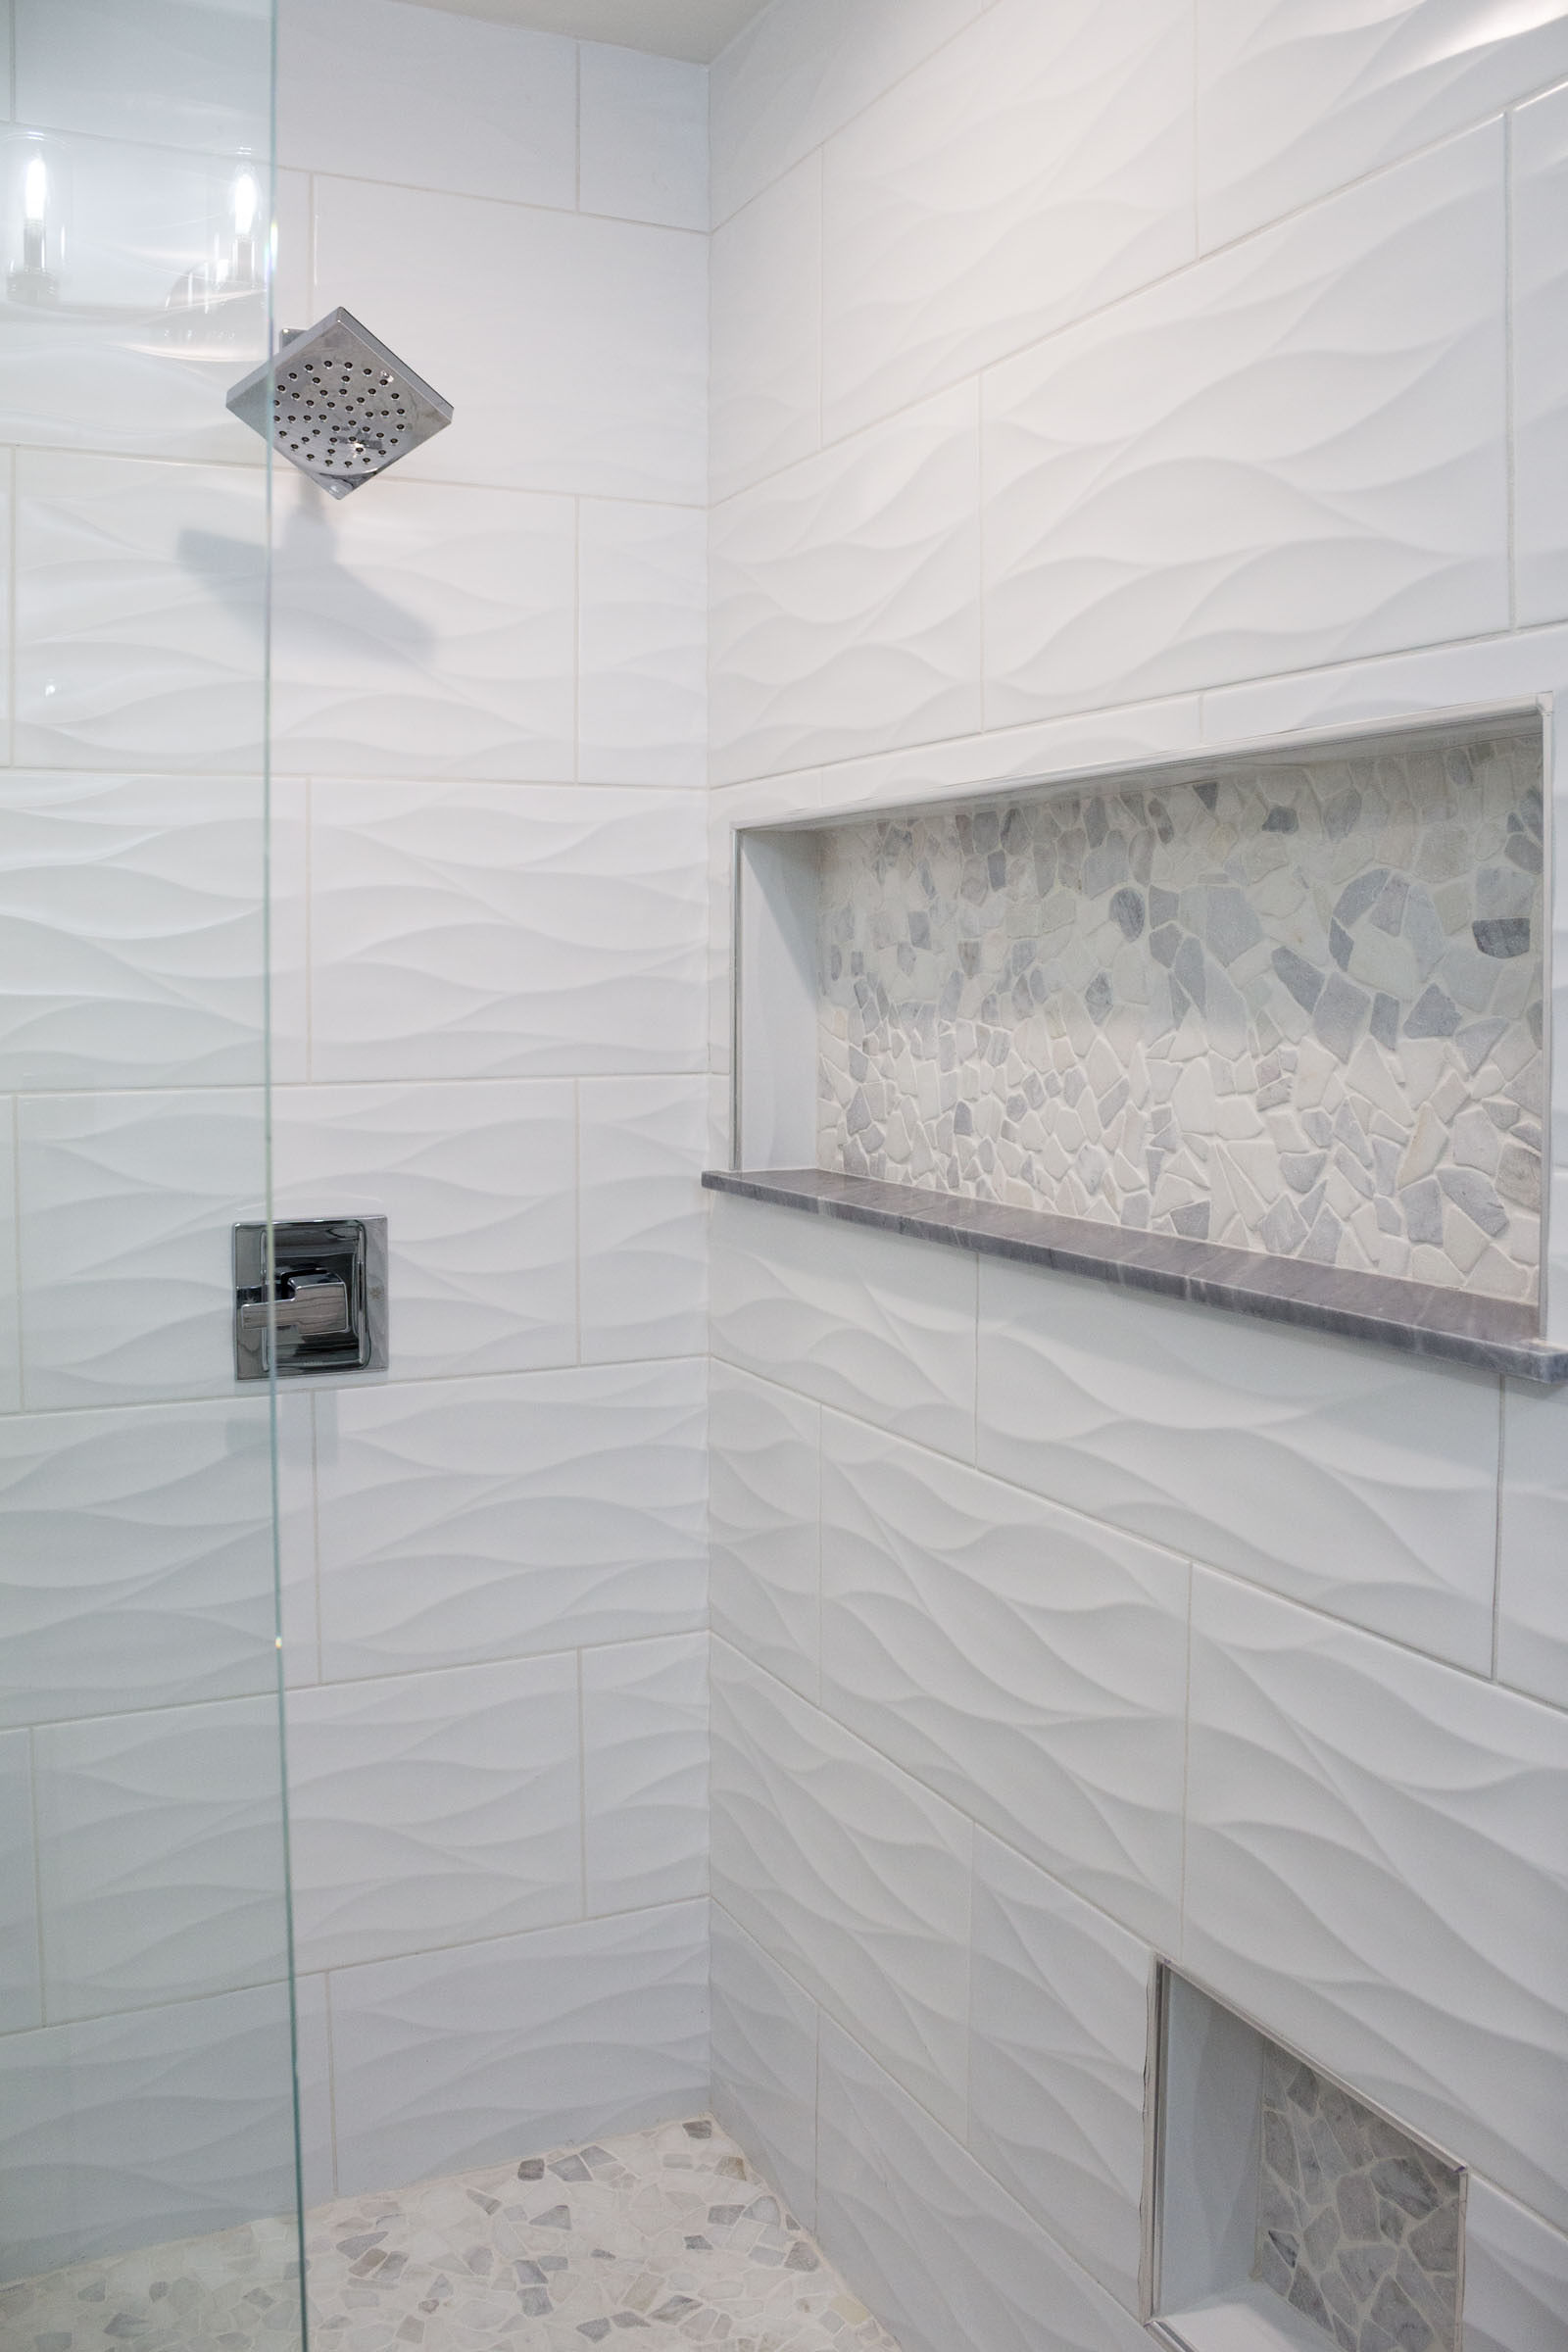 Walk in shower remodel with white tile and niche inserts